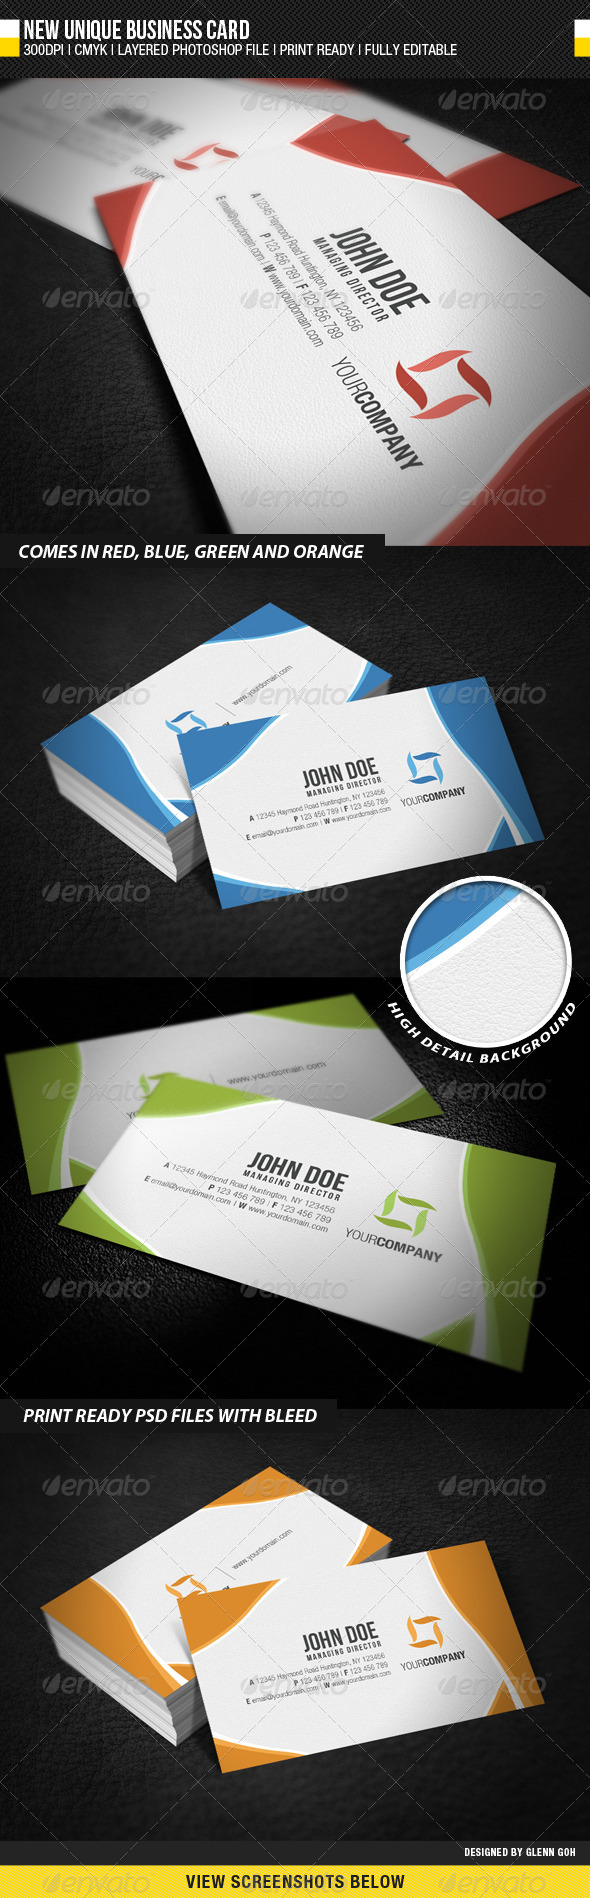 New Unique Business Card - Corporate Business Cards